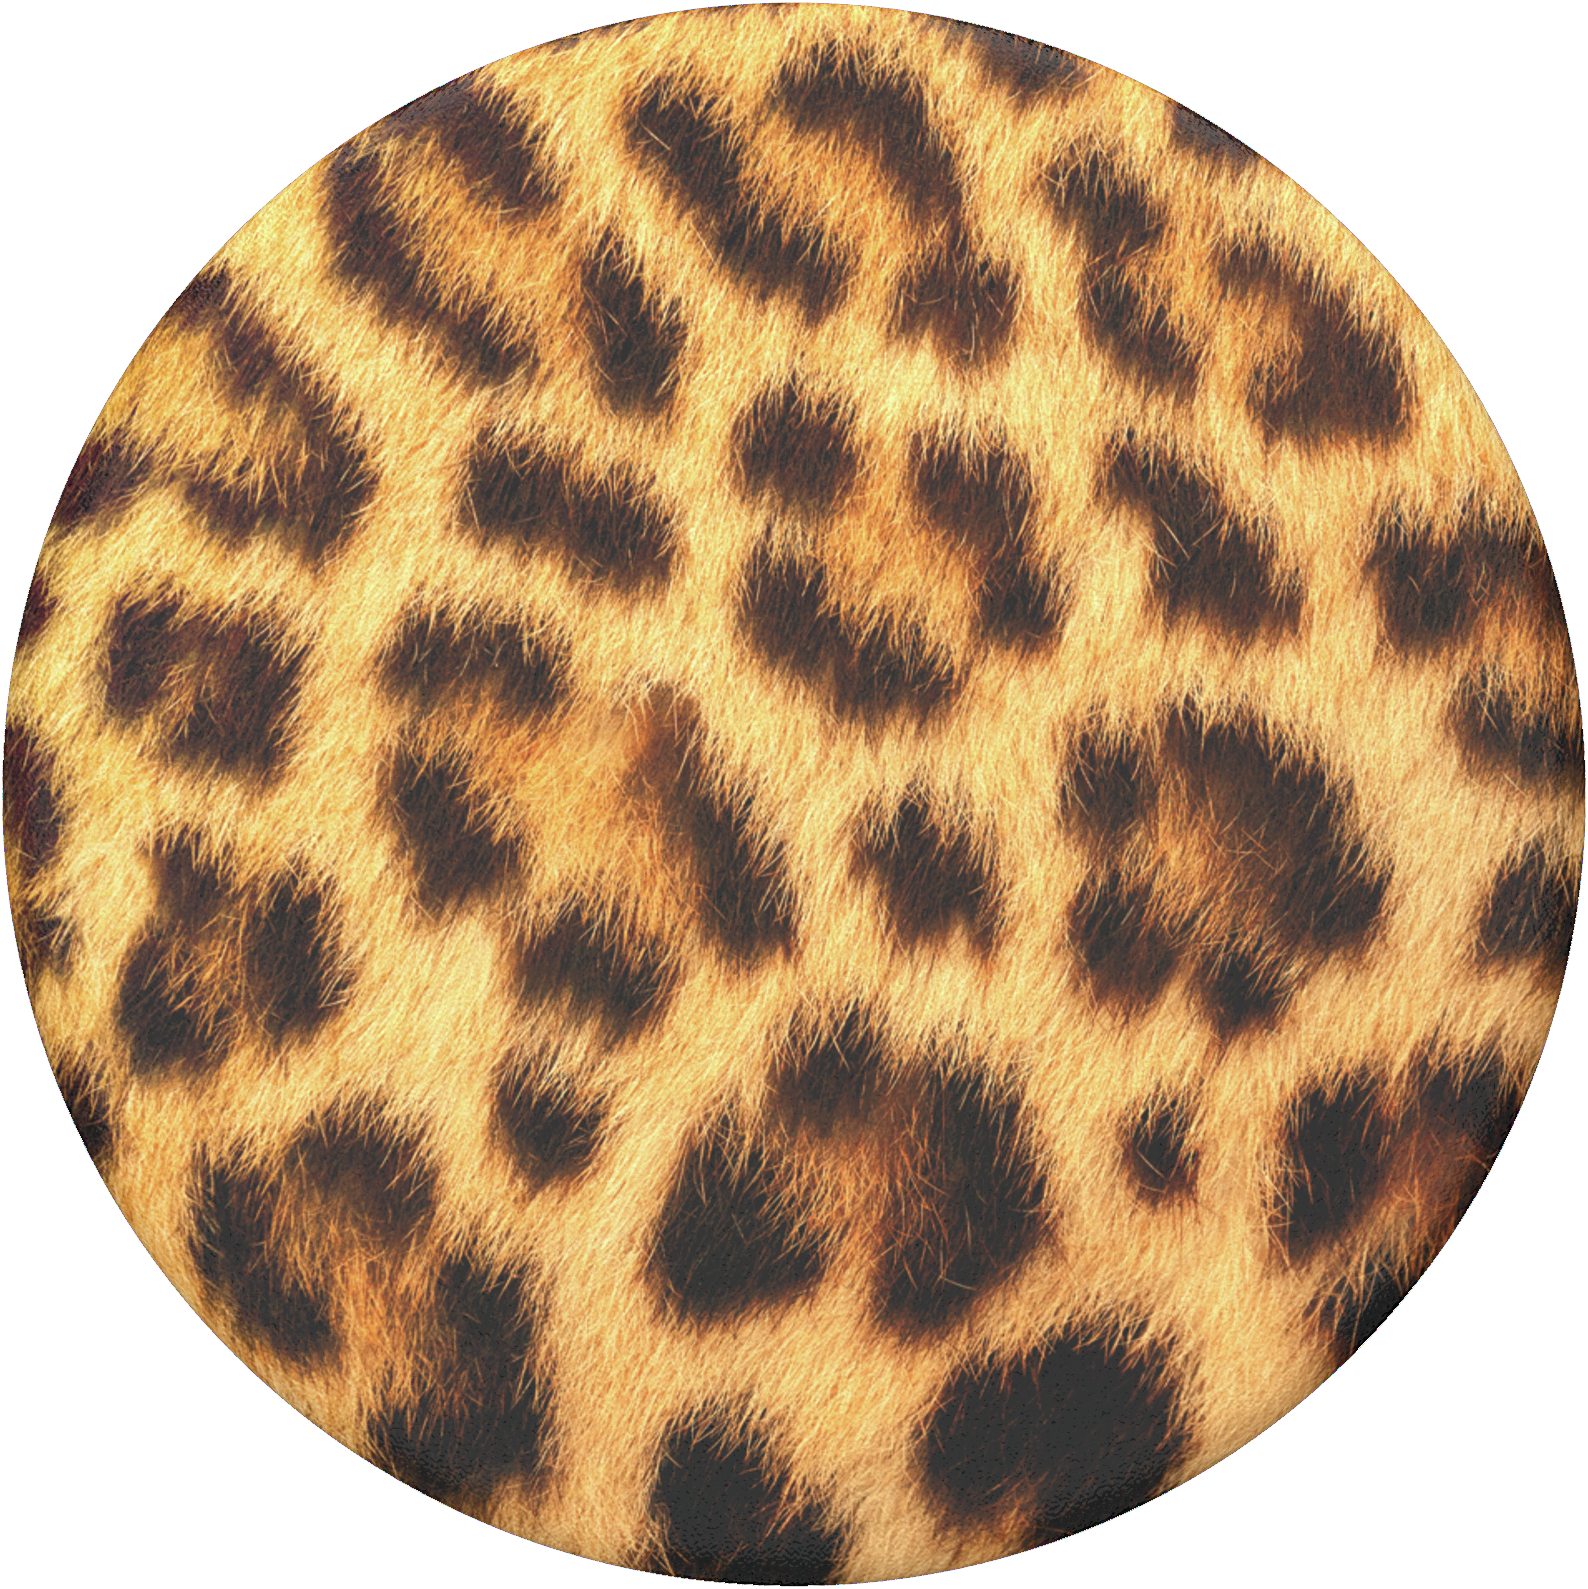 PopGrip Cheetah Chic, PopSockets